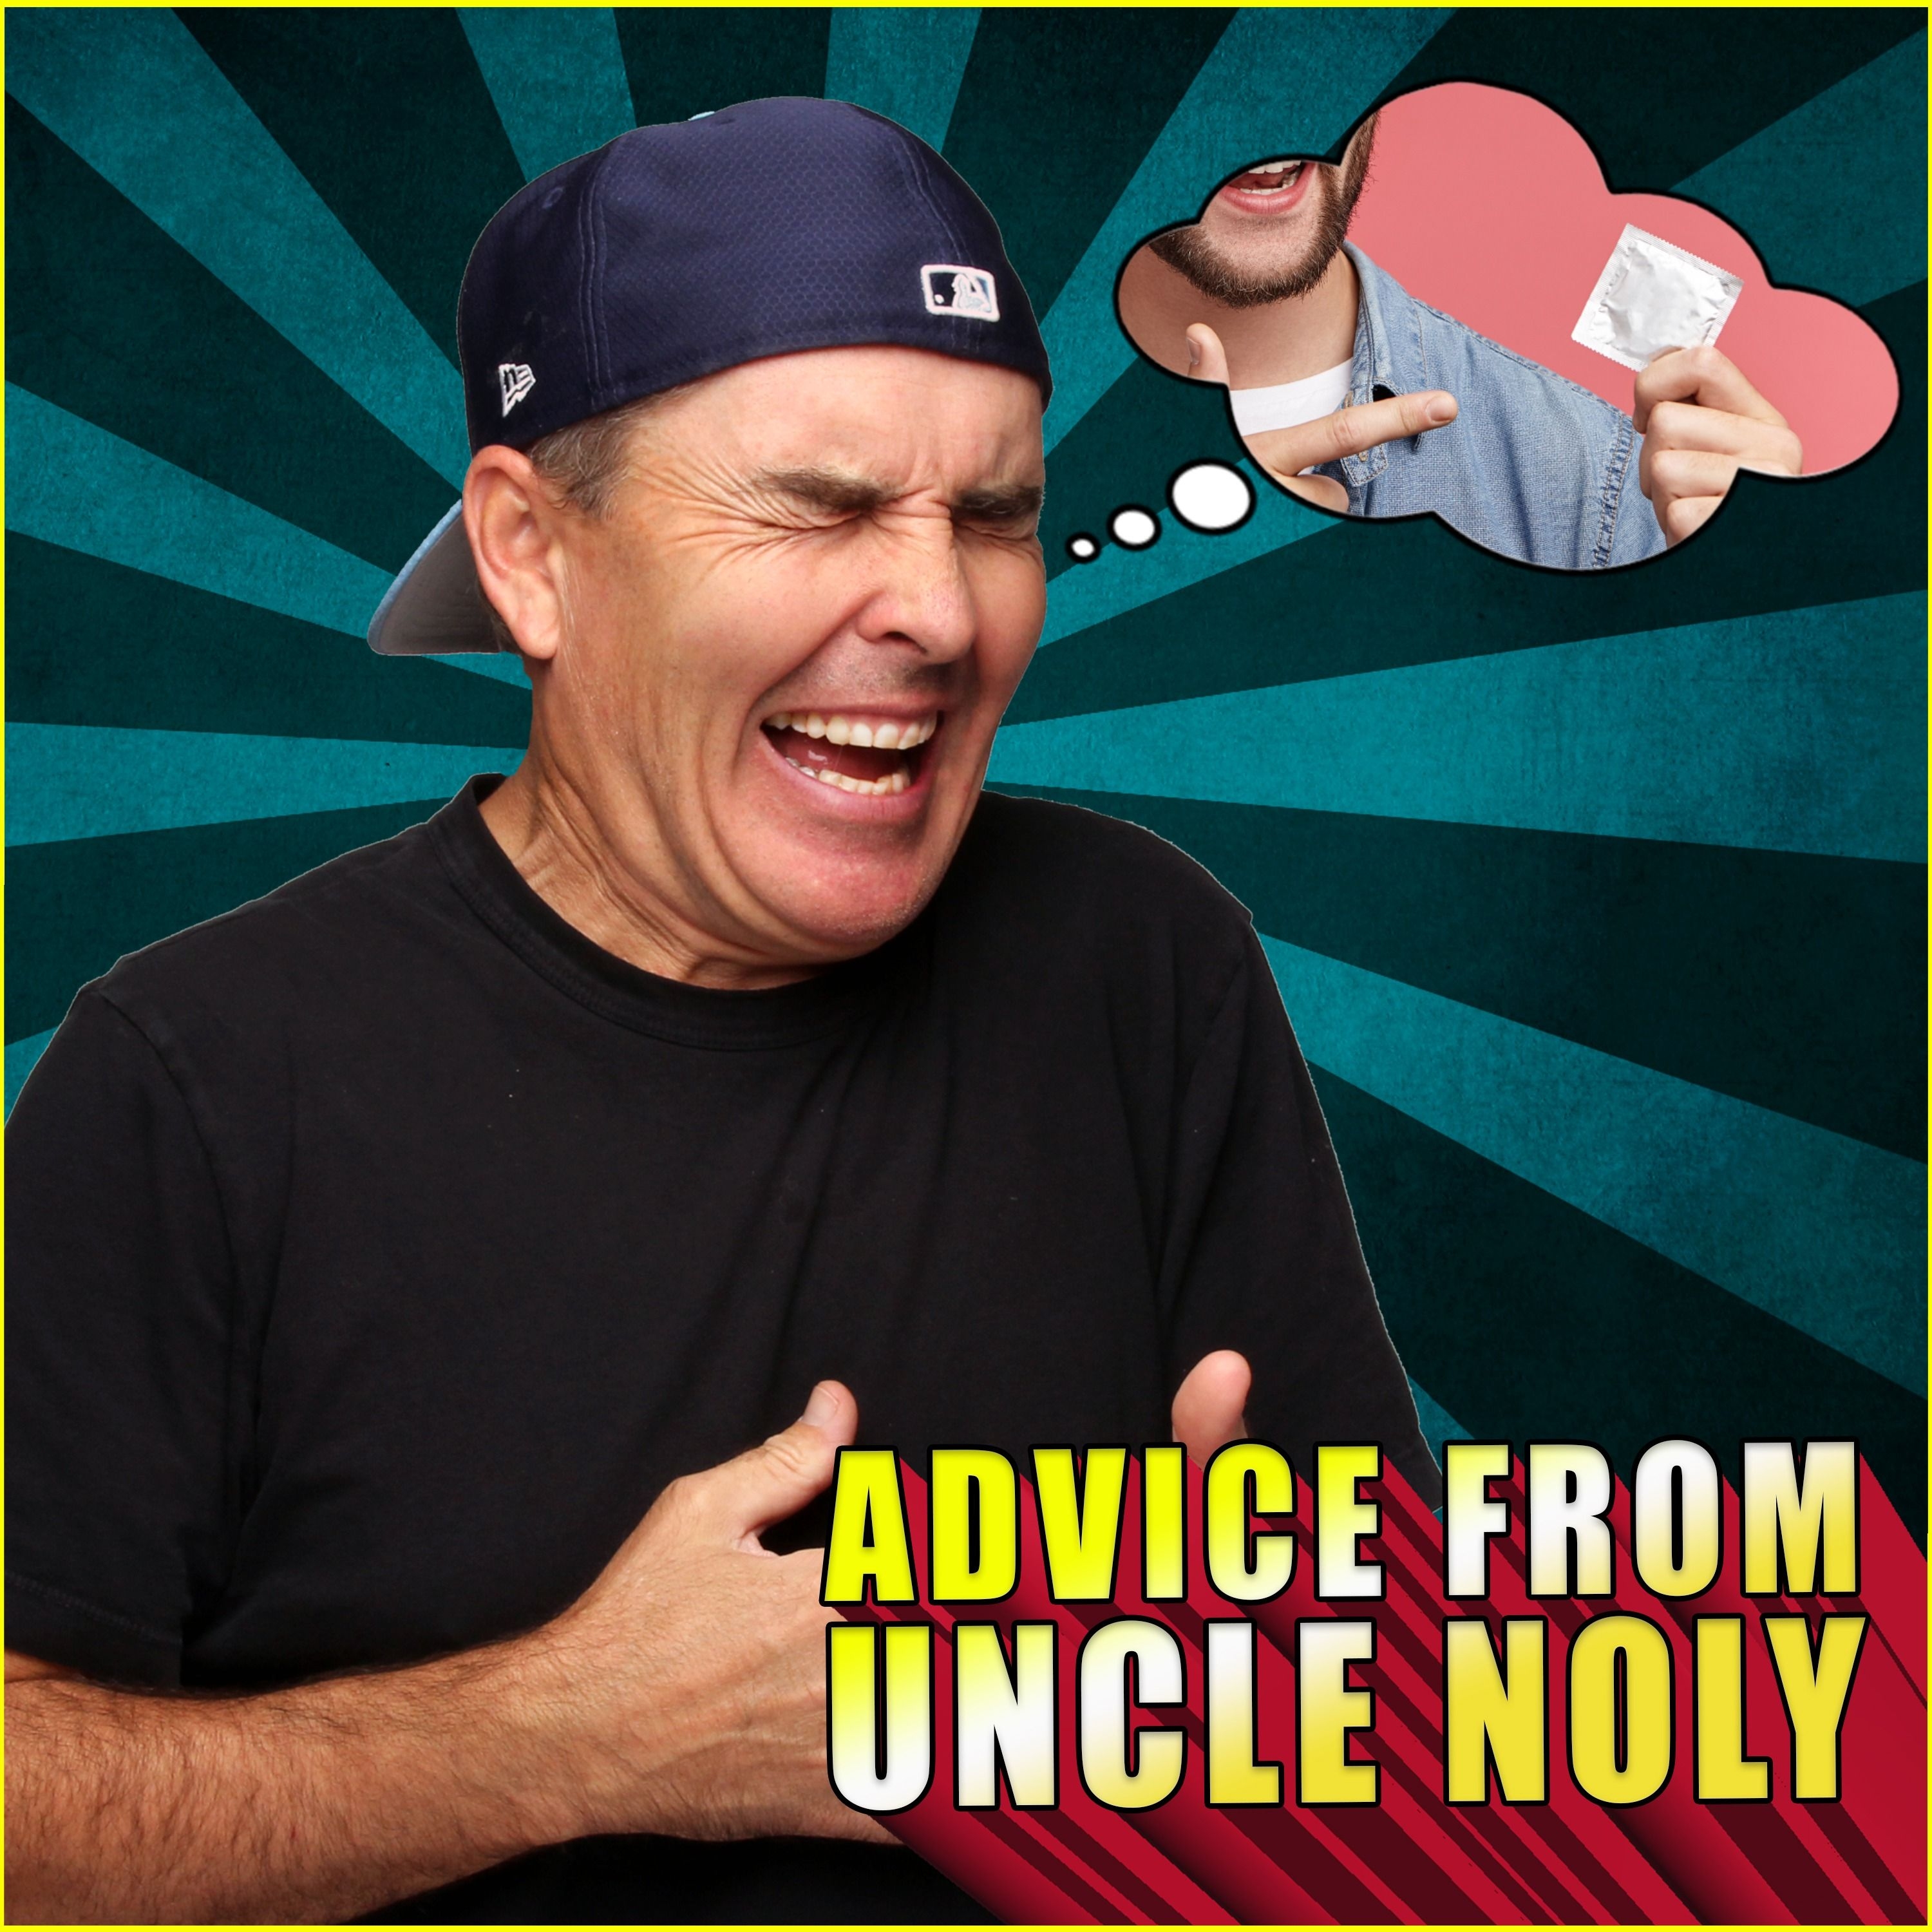 If You Accidentally Shart Your Pants on a Date, Should You Play it Cool? | Advice From Uncle Noly